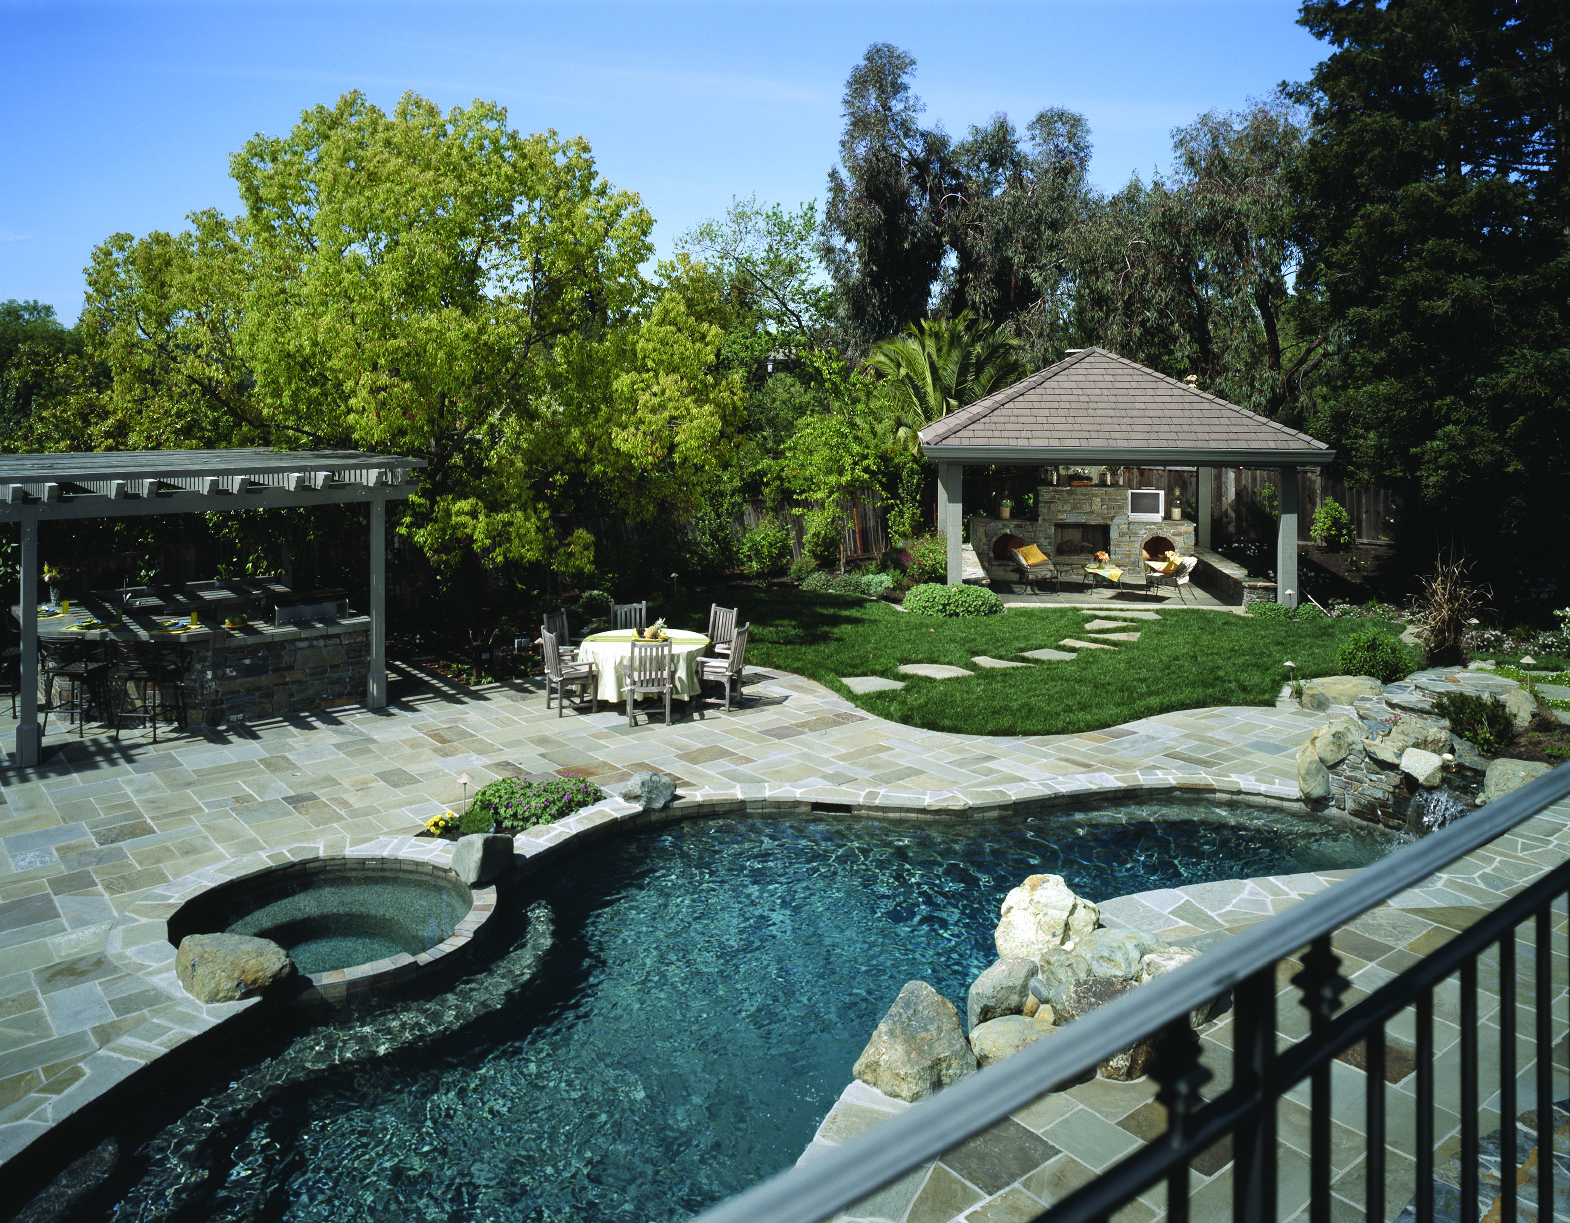 Design A Swimming Pool Area Perfect For Your Family Landscapers Landscaping Fishkill Ny